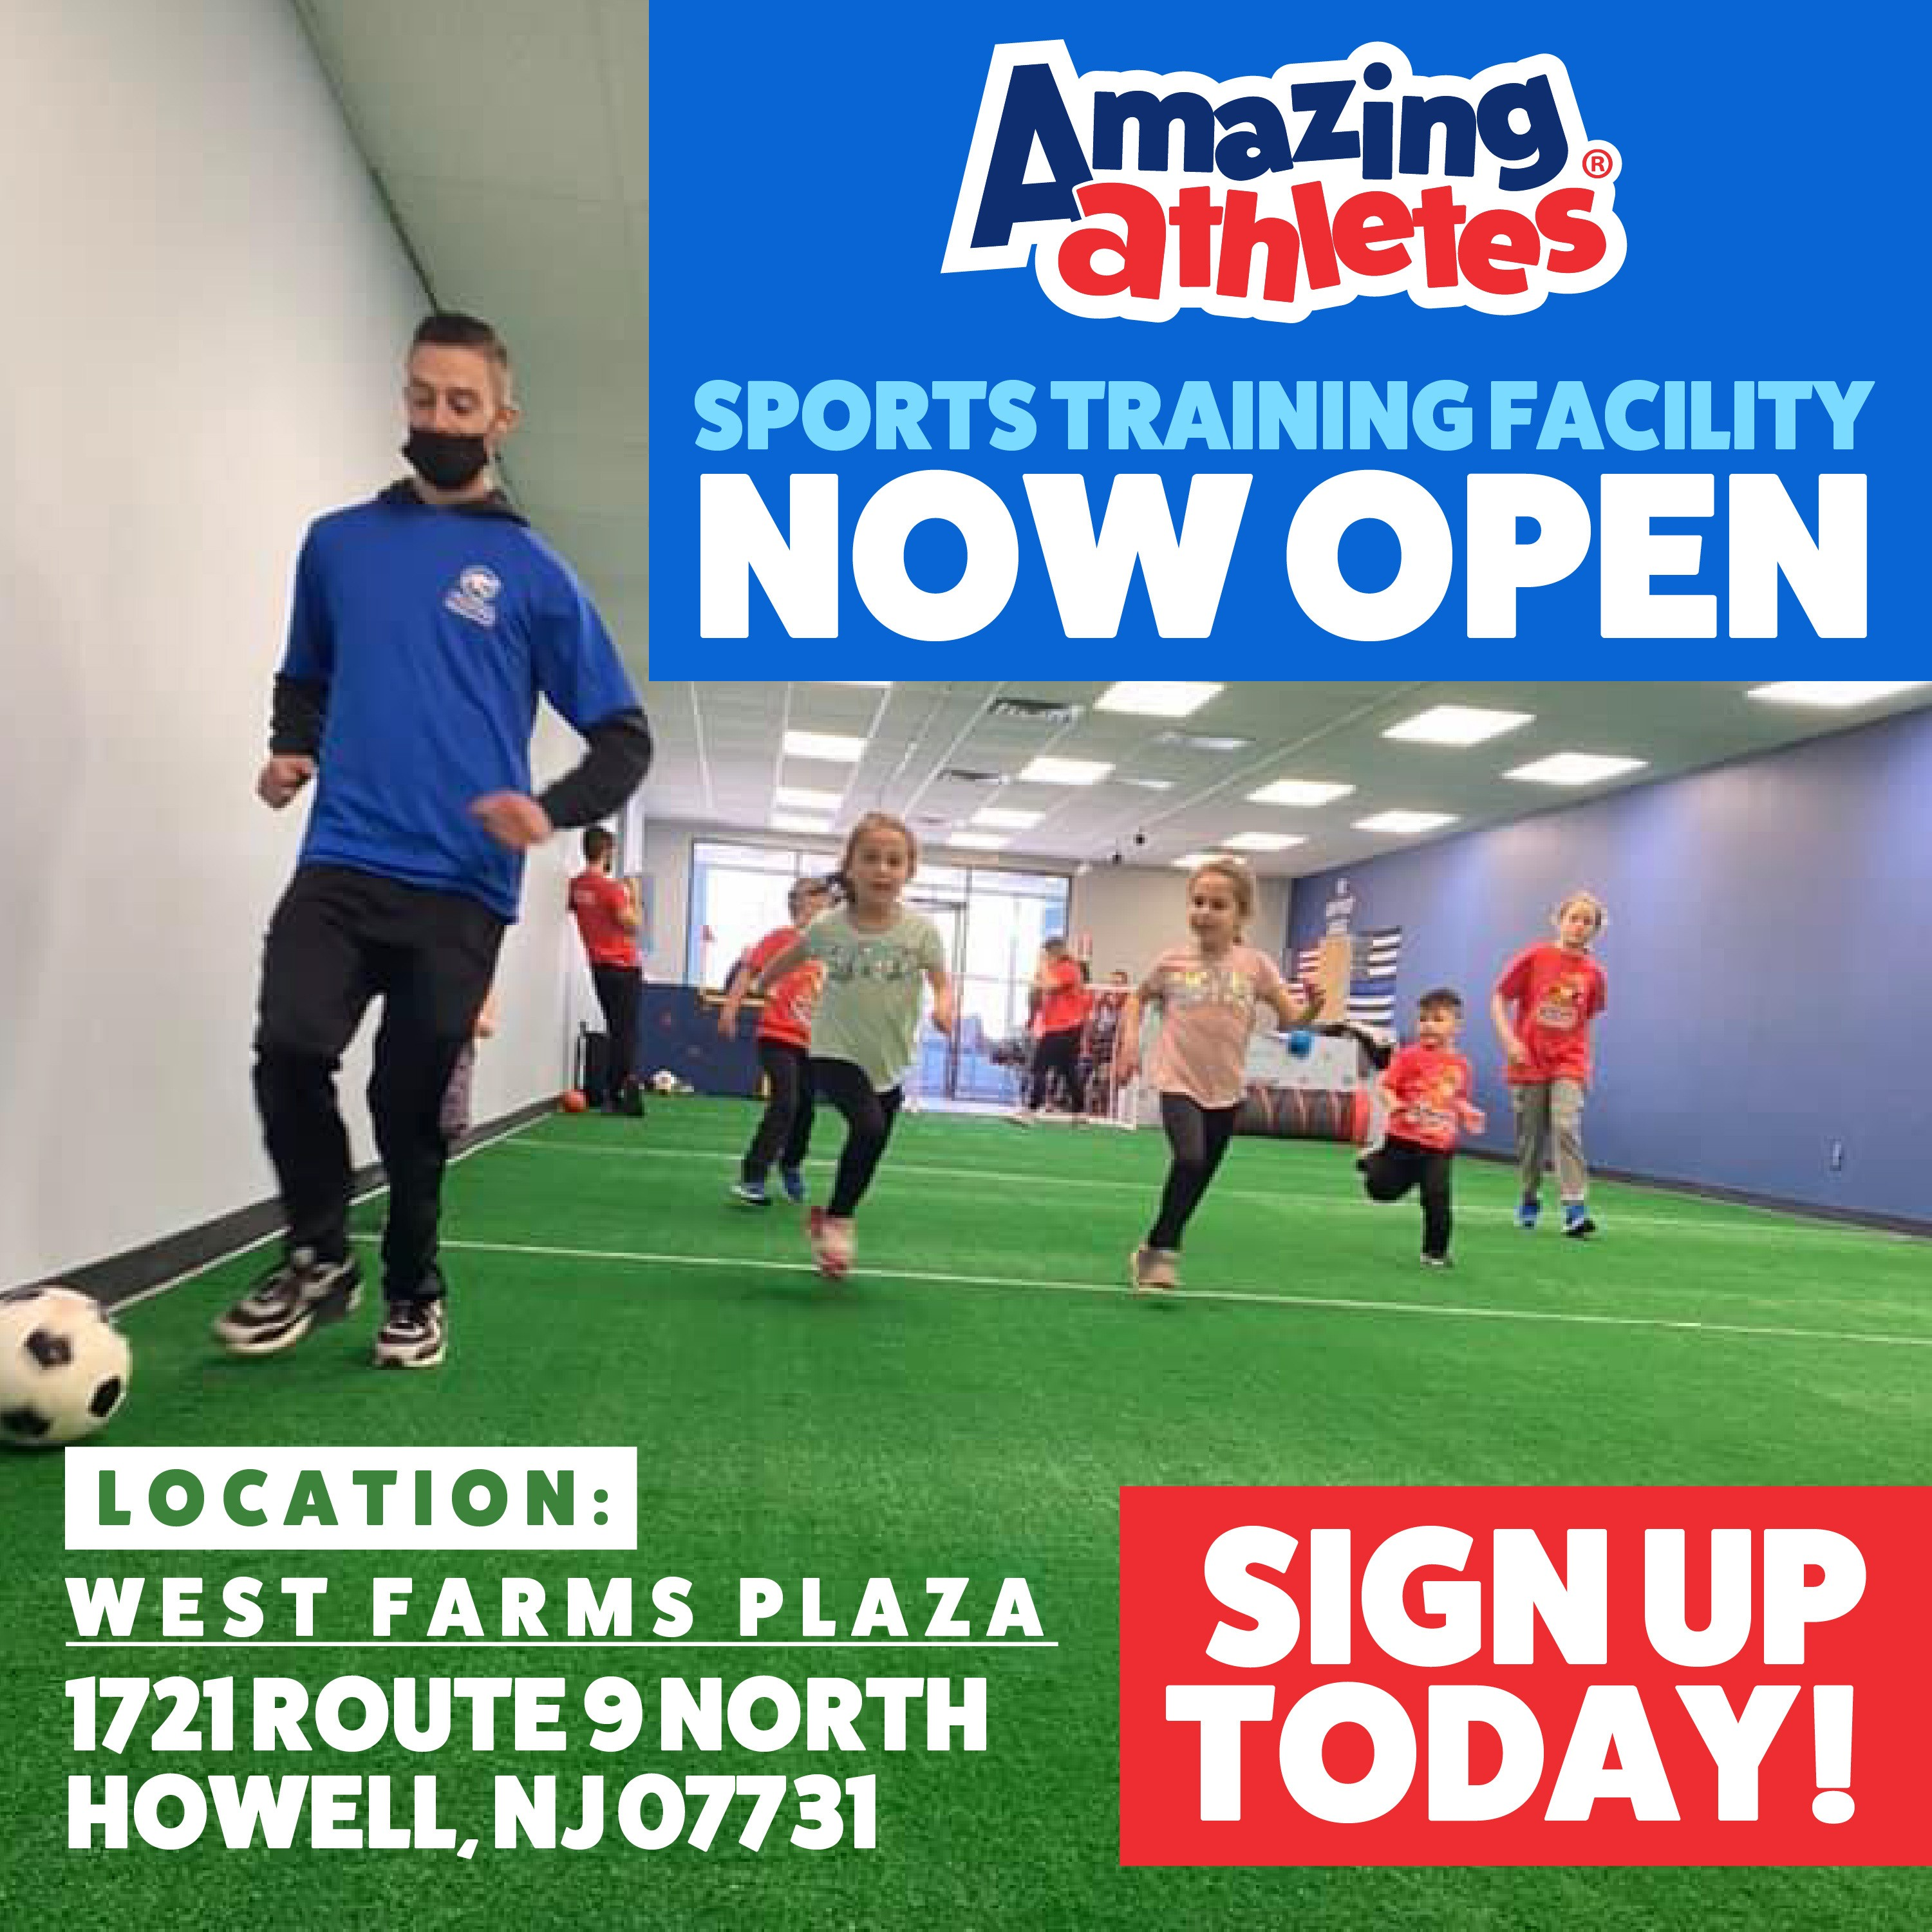 Amazing Athletes Sports Training Facilty opening in Howell Township NJ on Monday April 12 2021